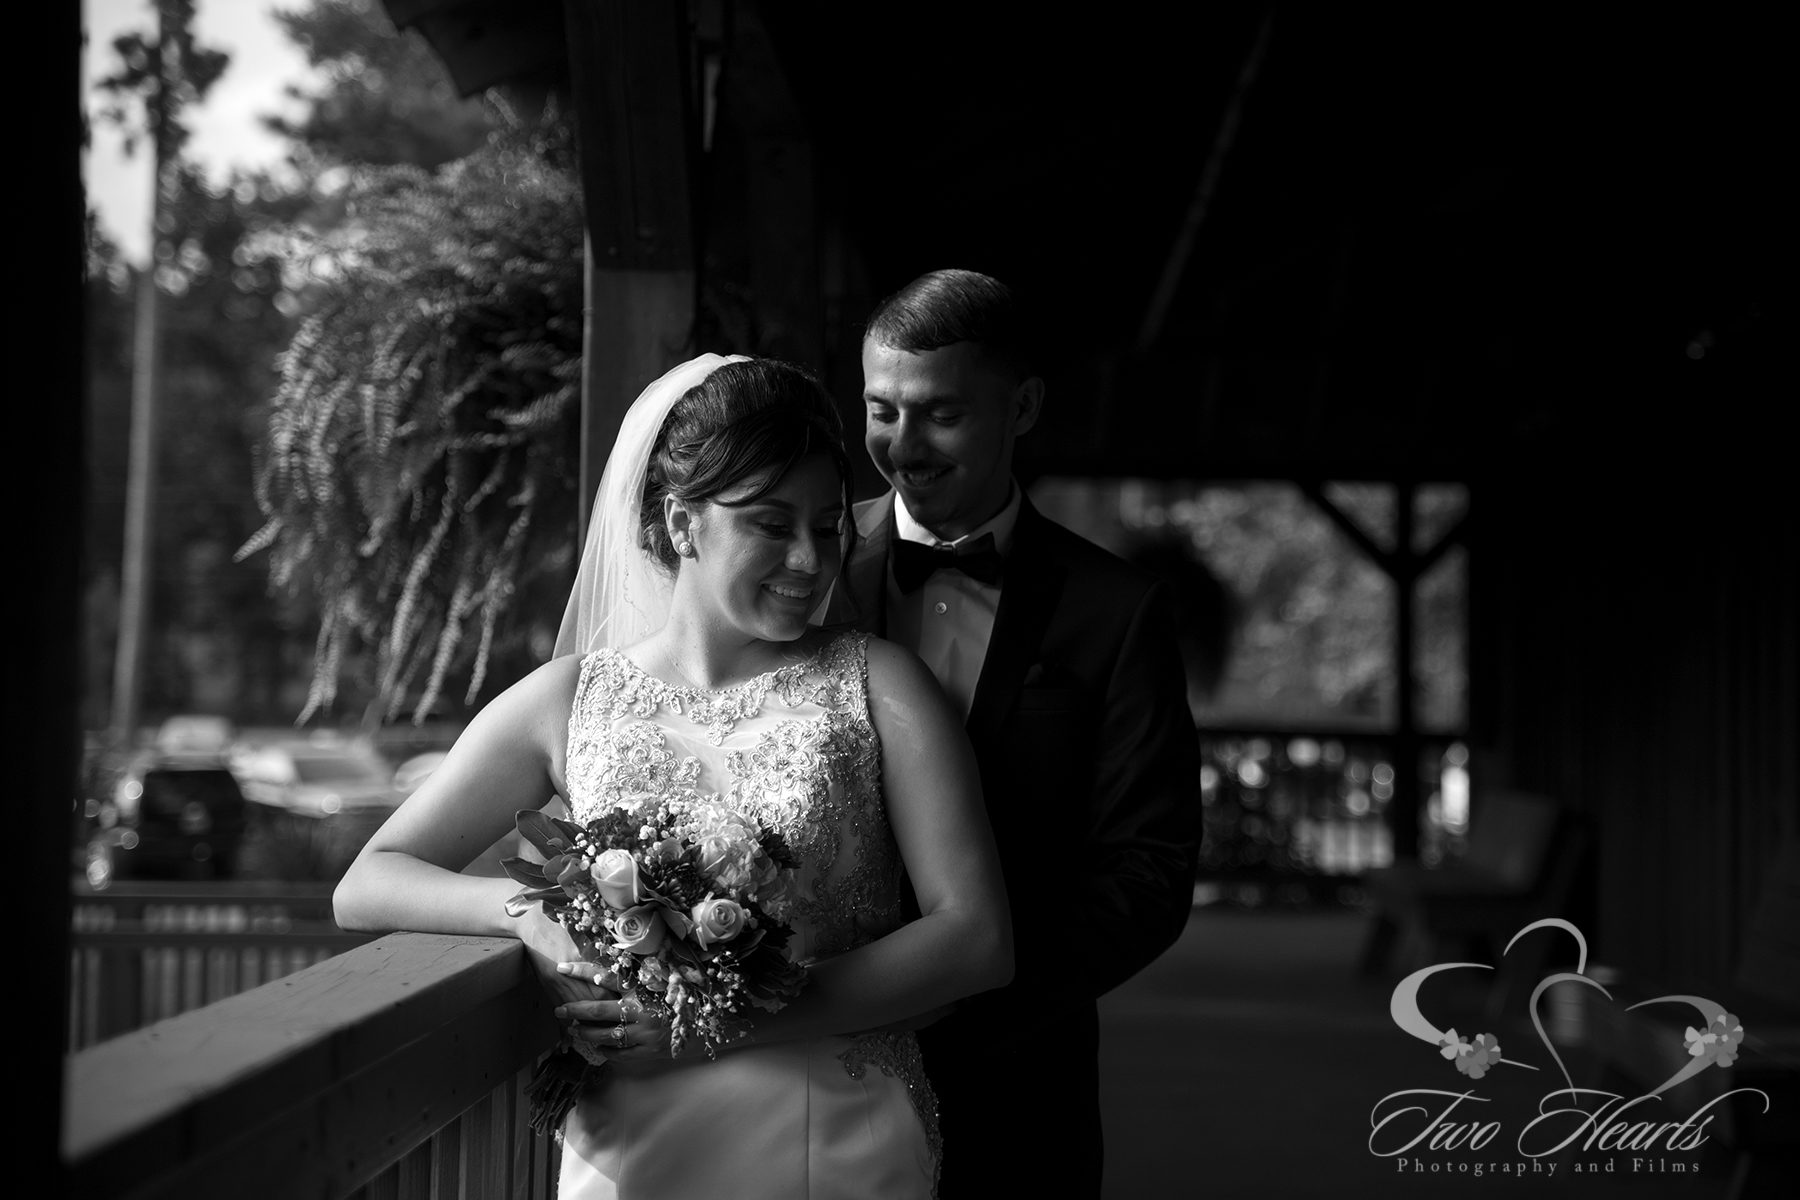 Taking Care Of Your Wedding Photography Needs With The Best Houston Wedding Photographers